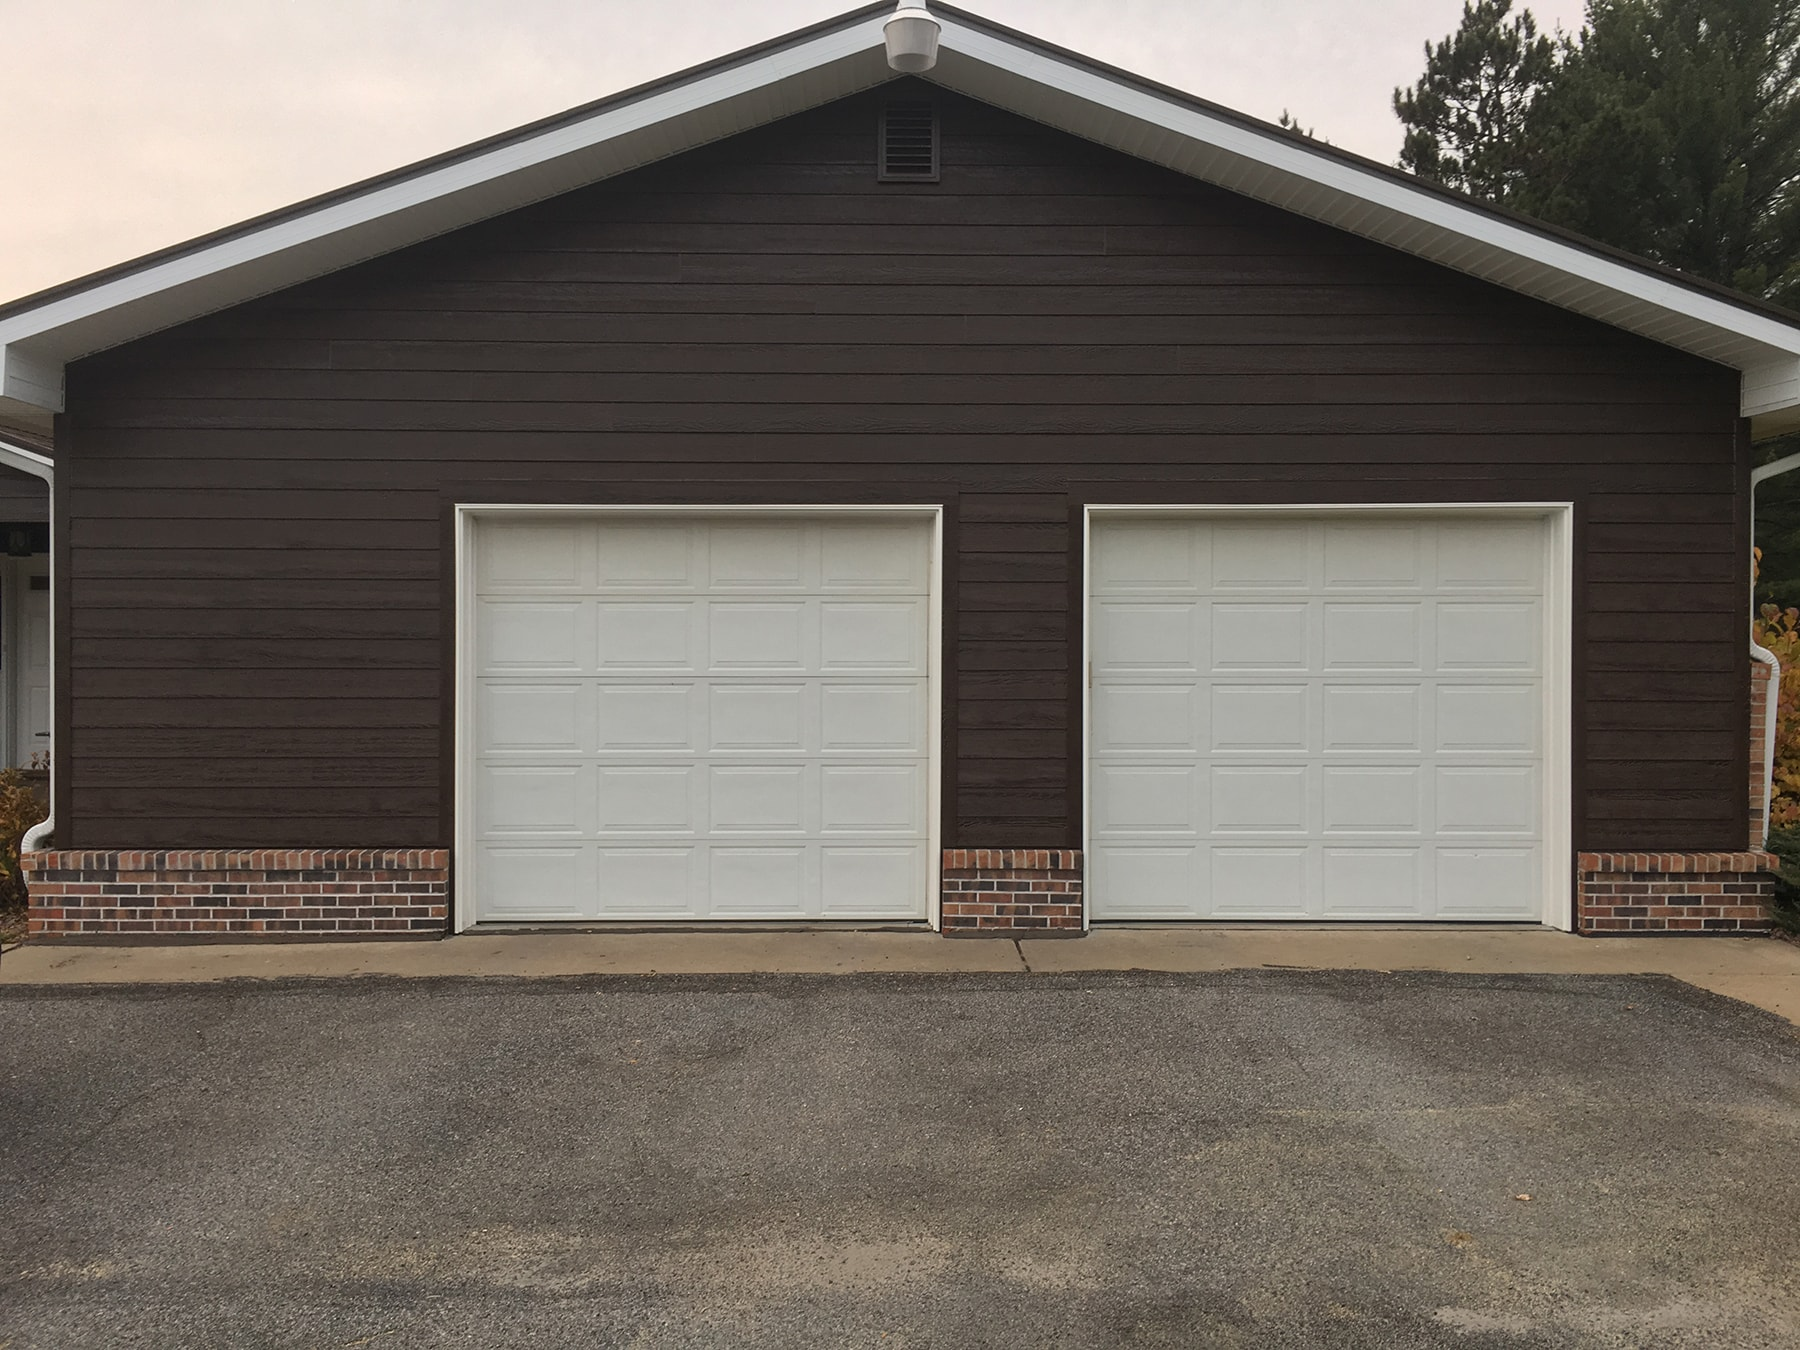 Lp Smartside With Diamond Kote Pre Finish Oakwood Exteriors